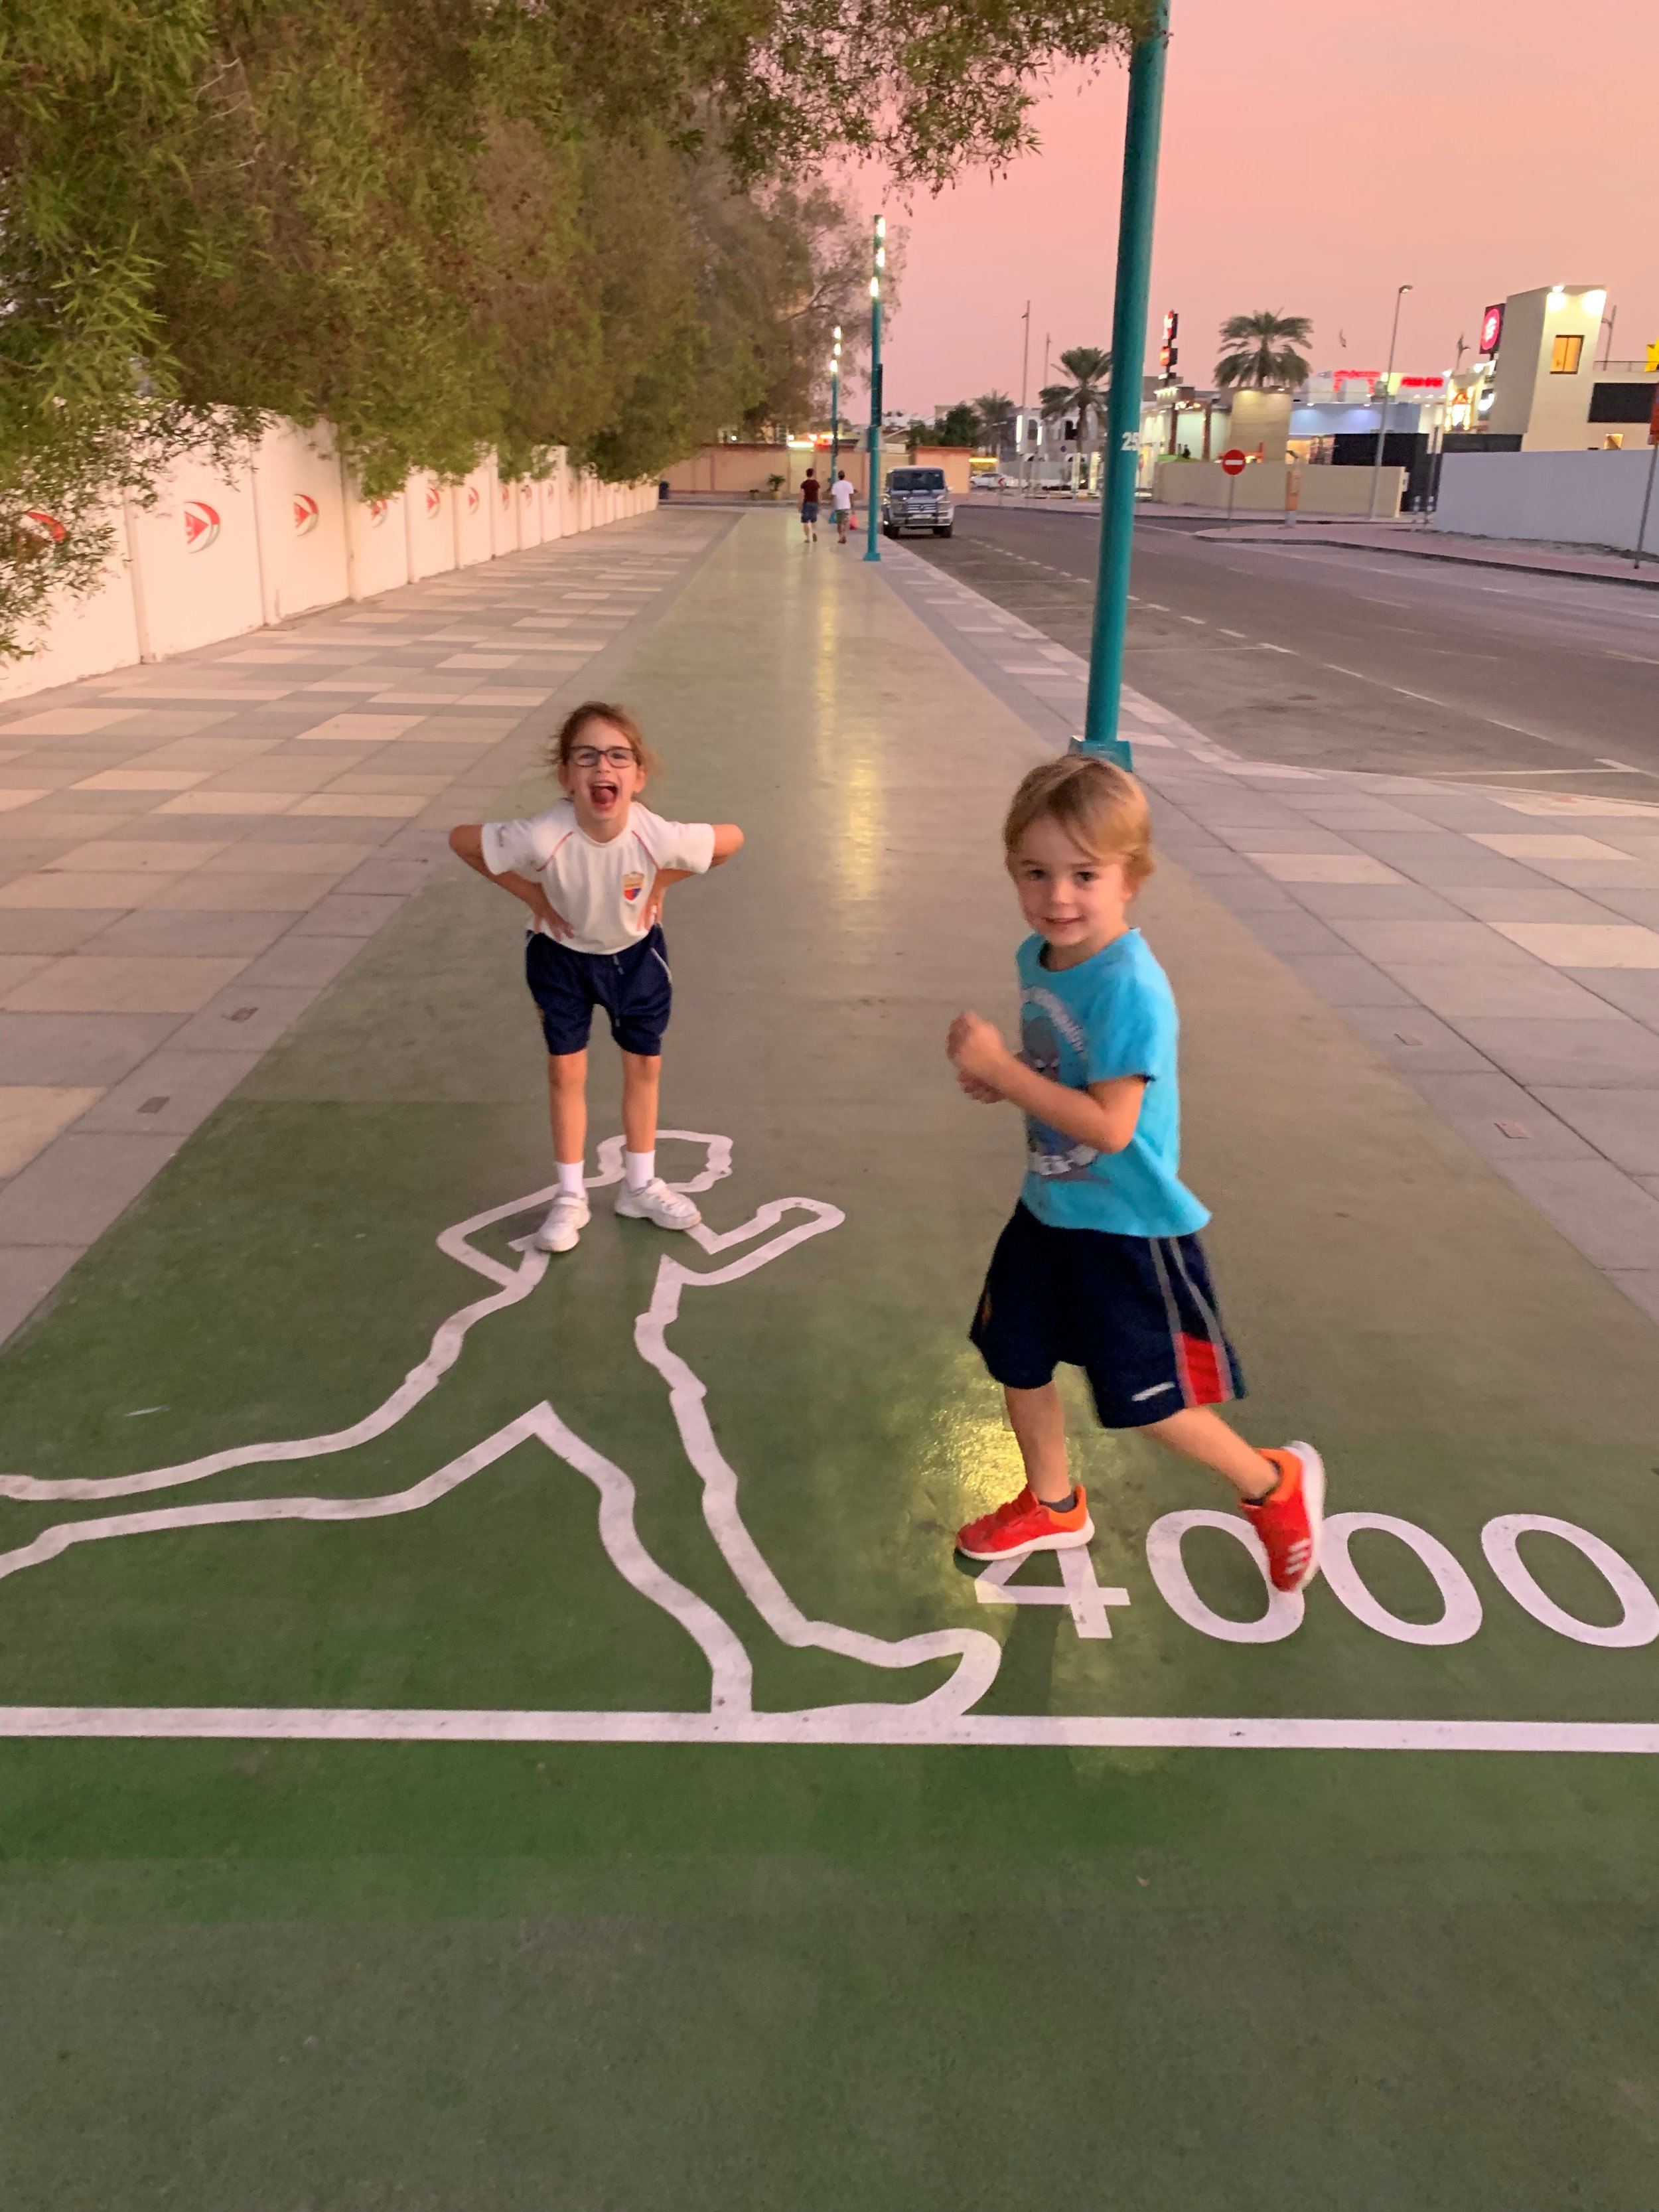 Leo and Fox on the Jumeirah Running Track in Dubai